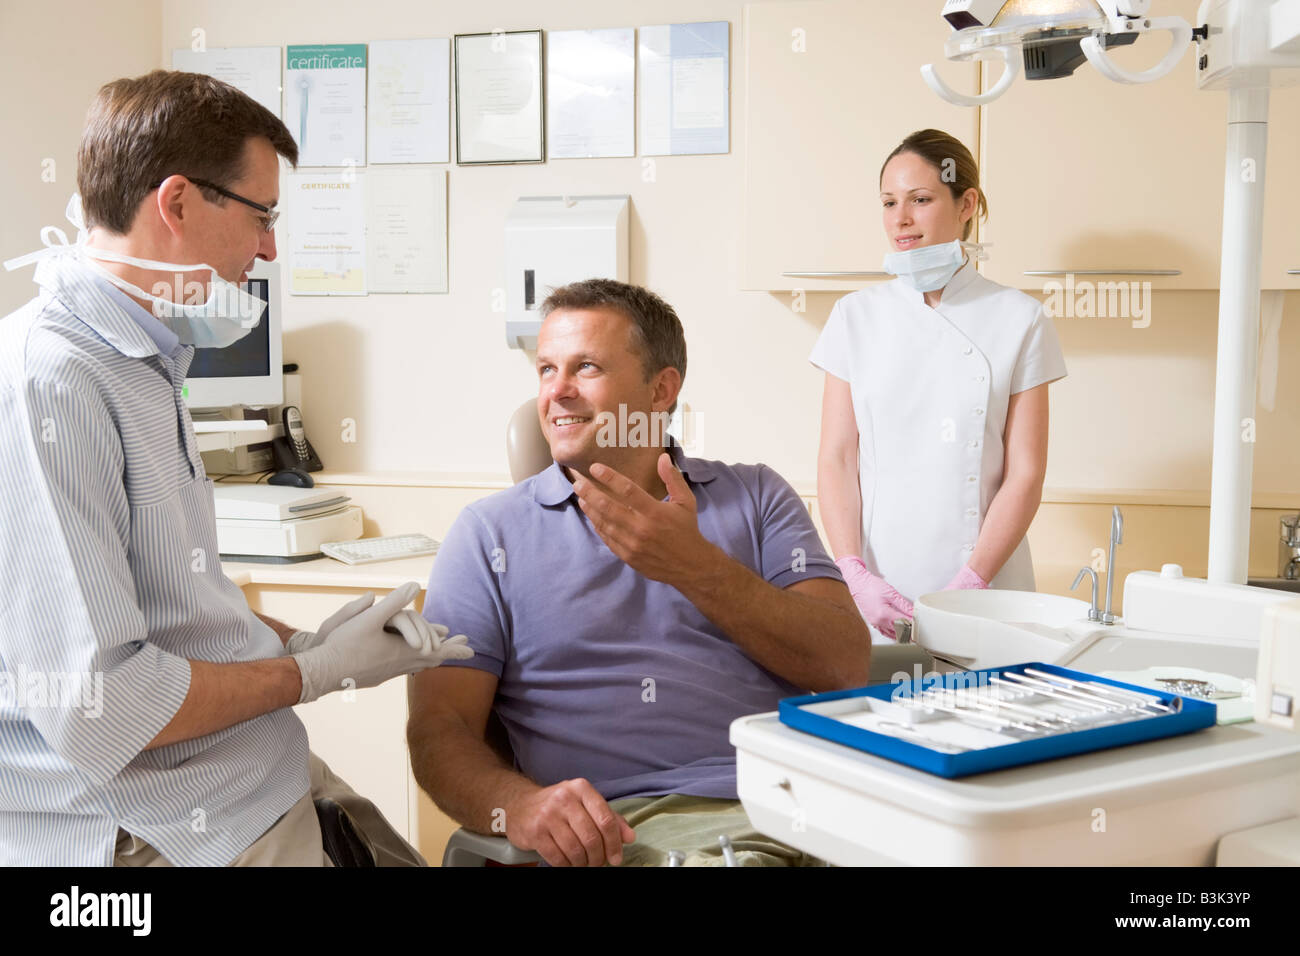 Dentist and assistant in exam room with man in chair smiling - Stock Image